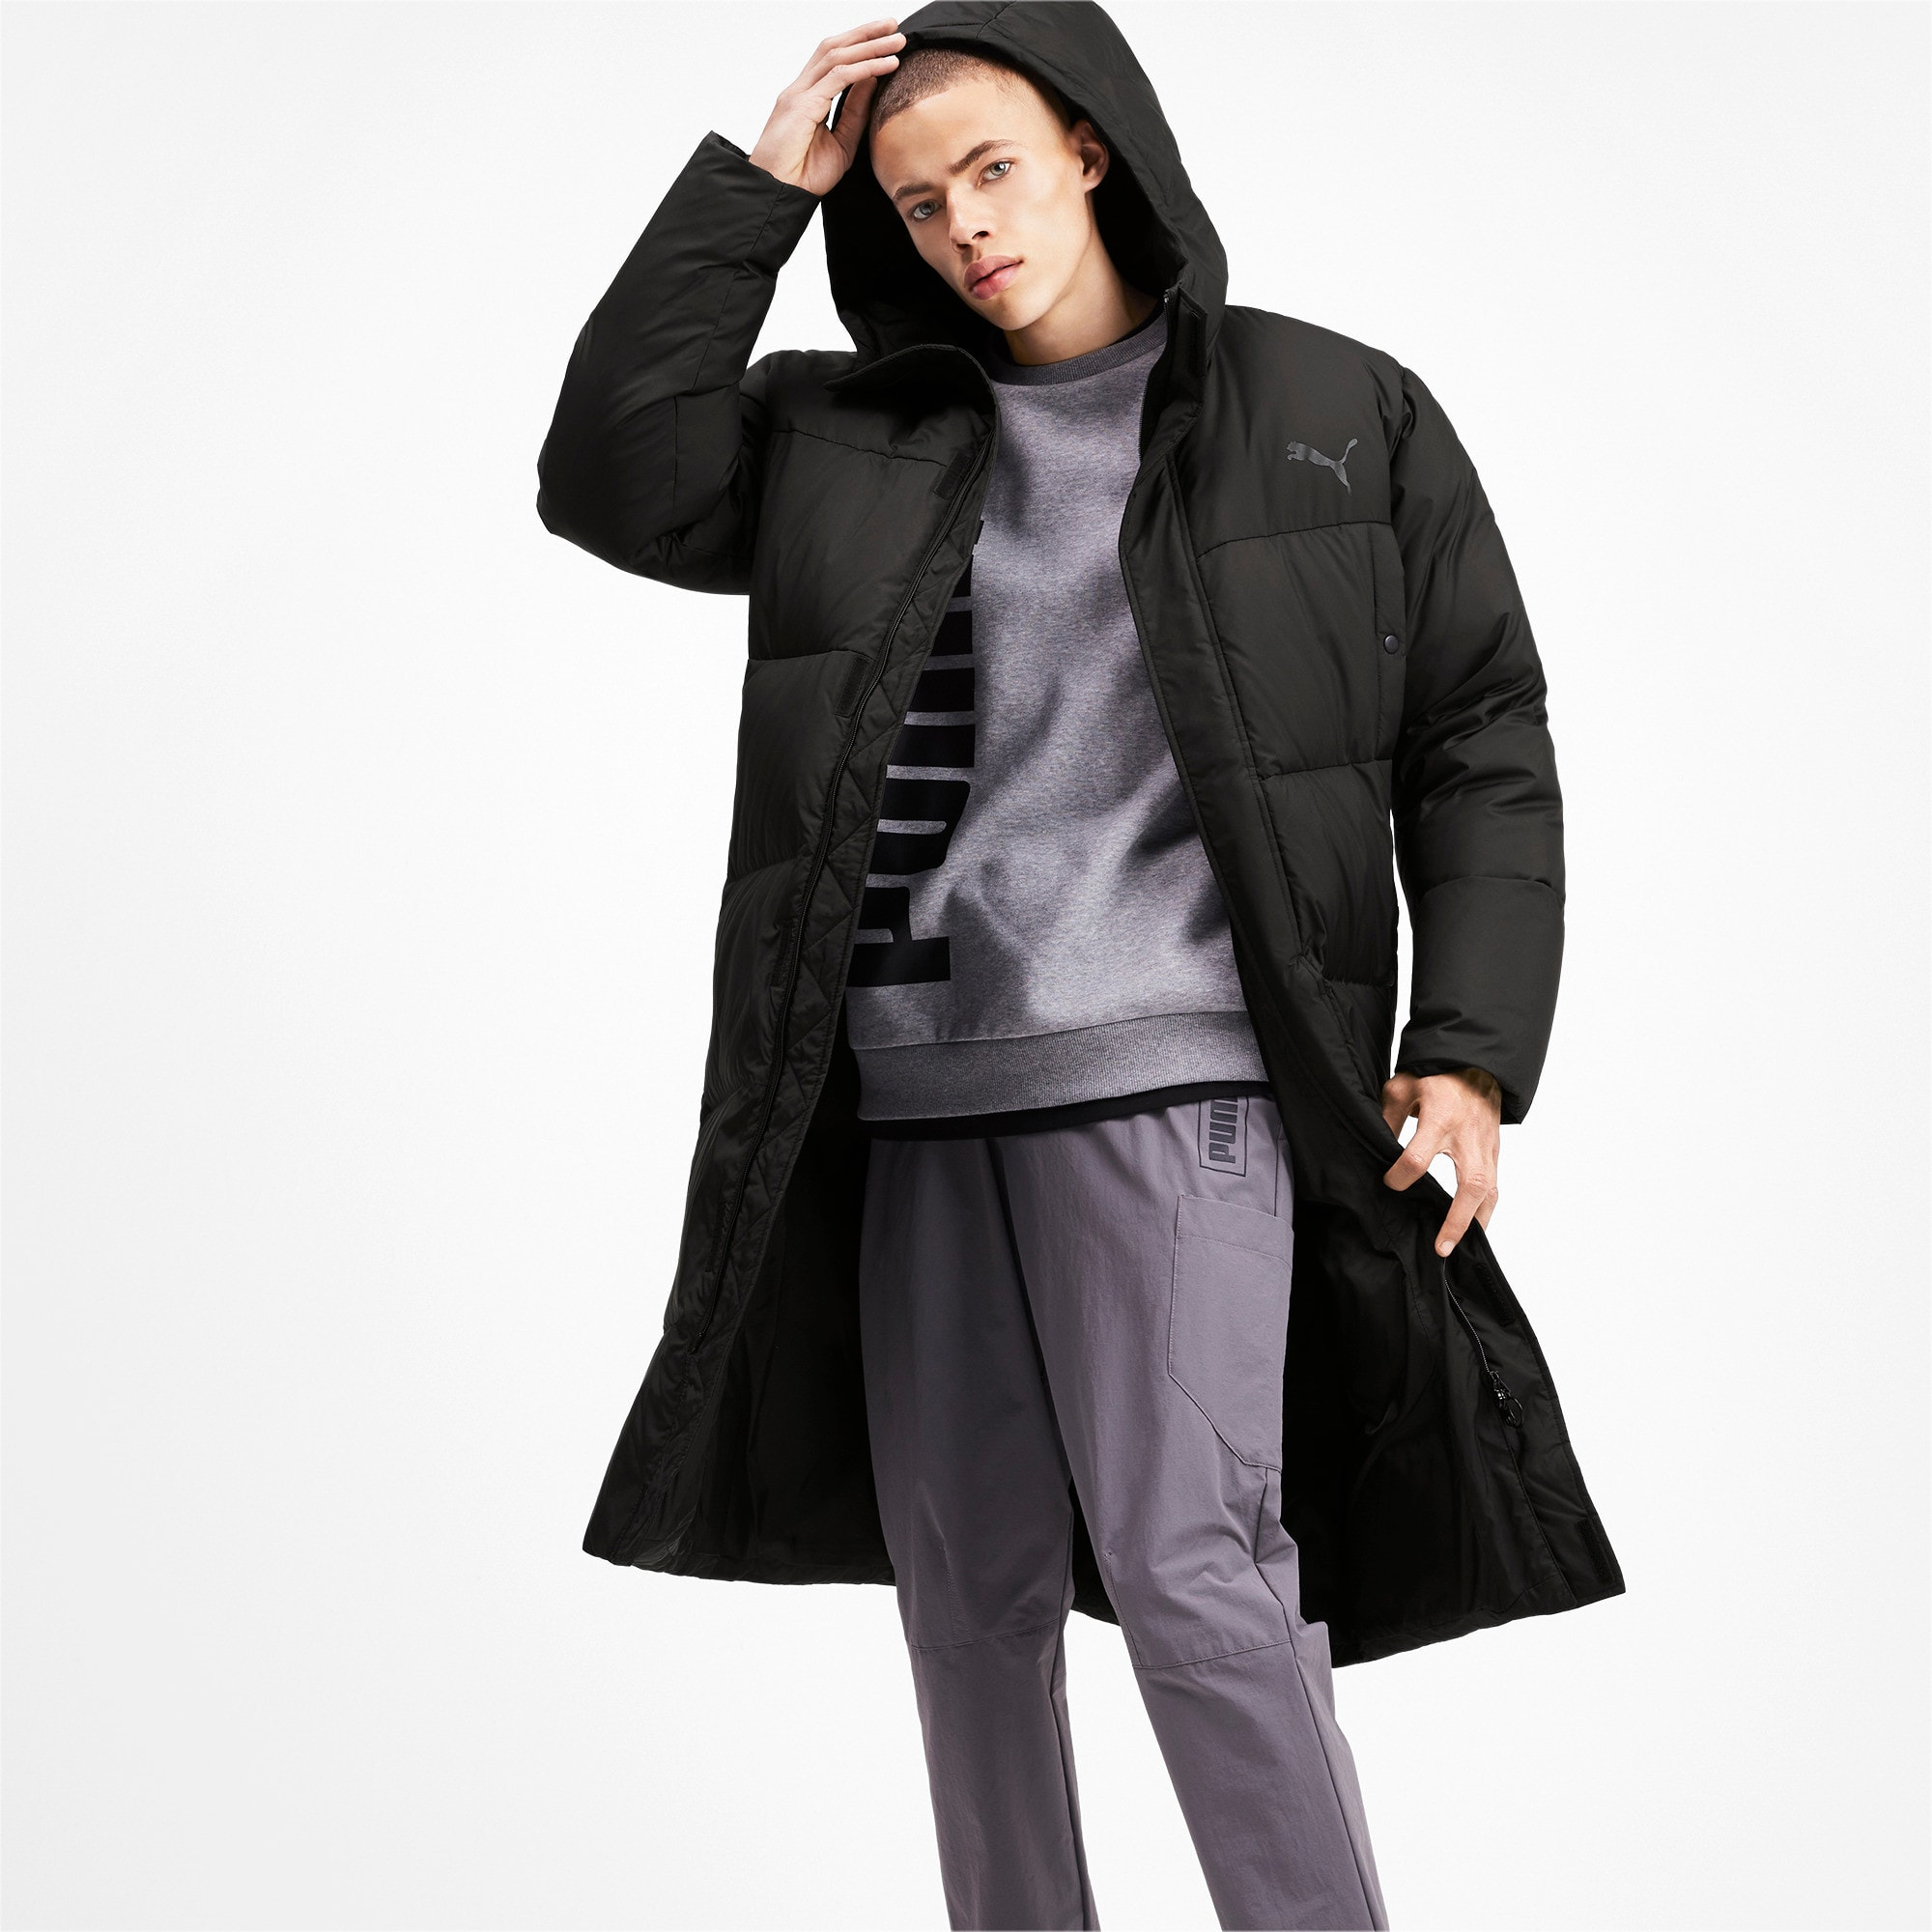 Anteprima 1 di Long Oversized Men's Hooded Coat, Puma Black, medio